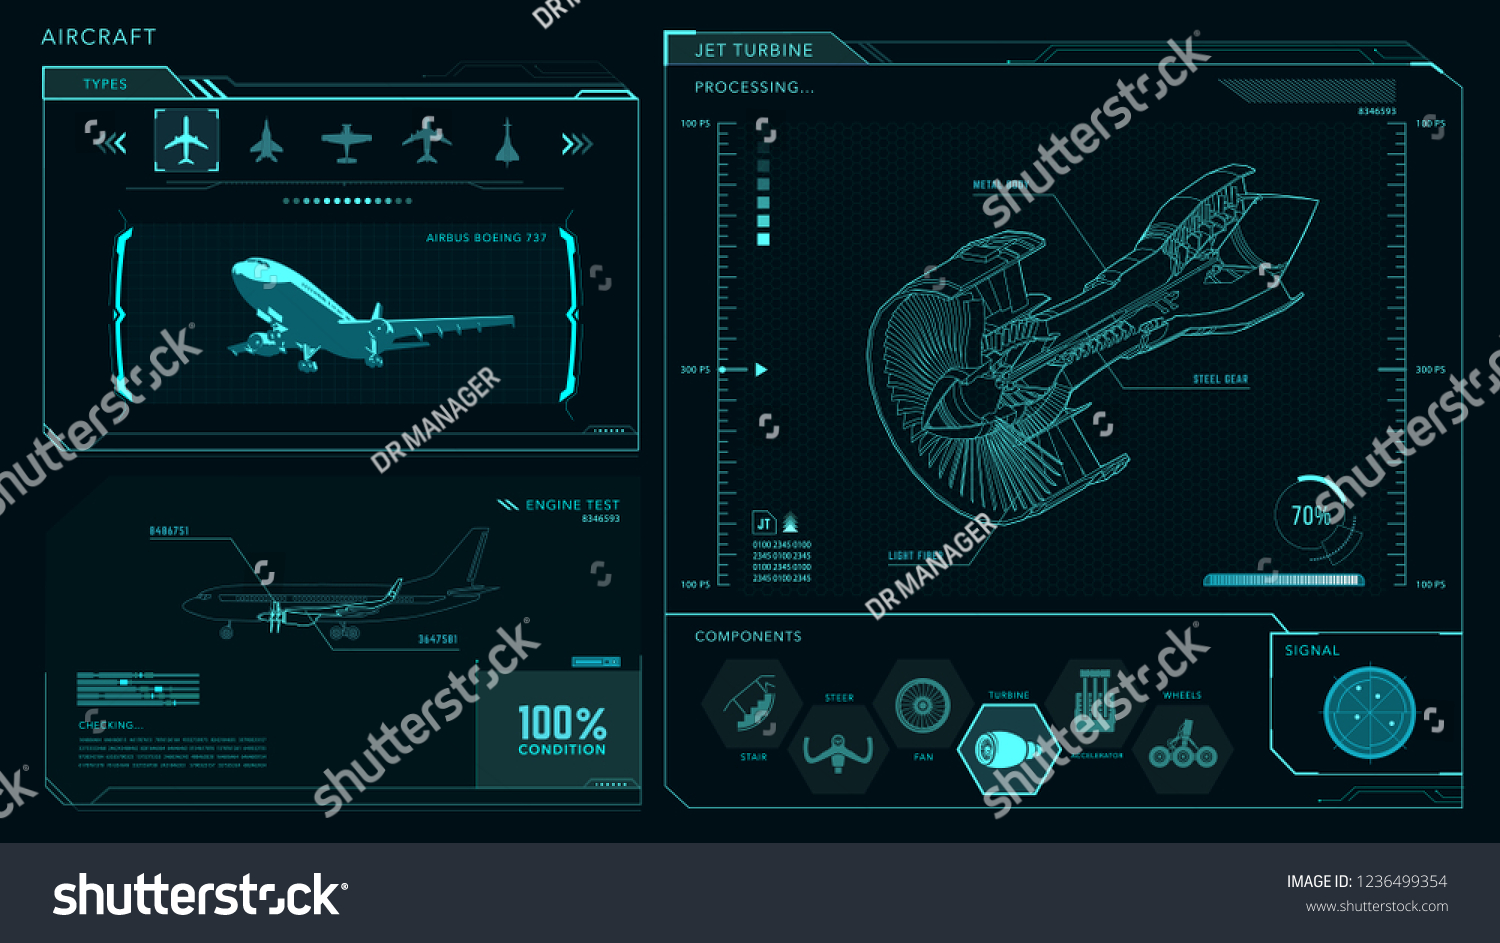 Turbine Airplane Engine Interface Vector Drawing Stock Diagram Of A Model